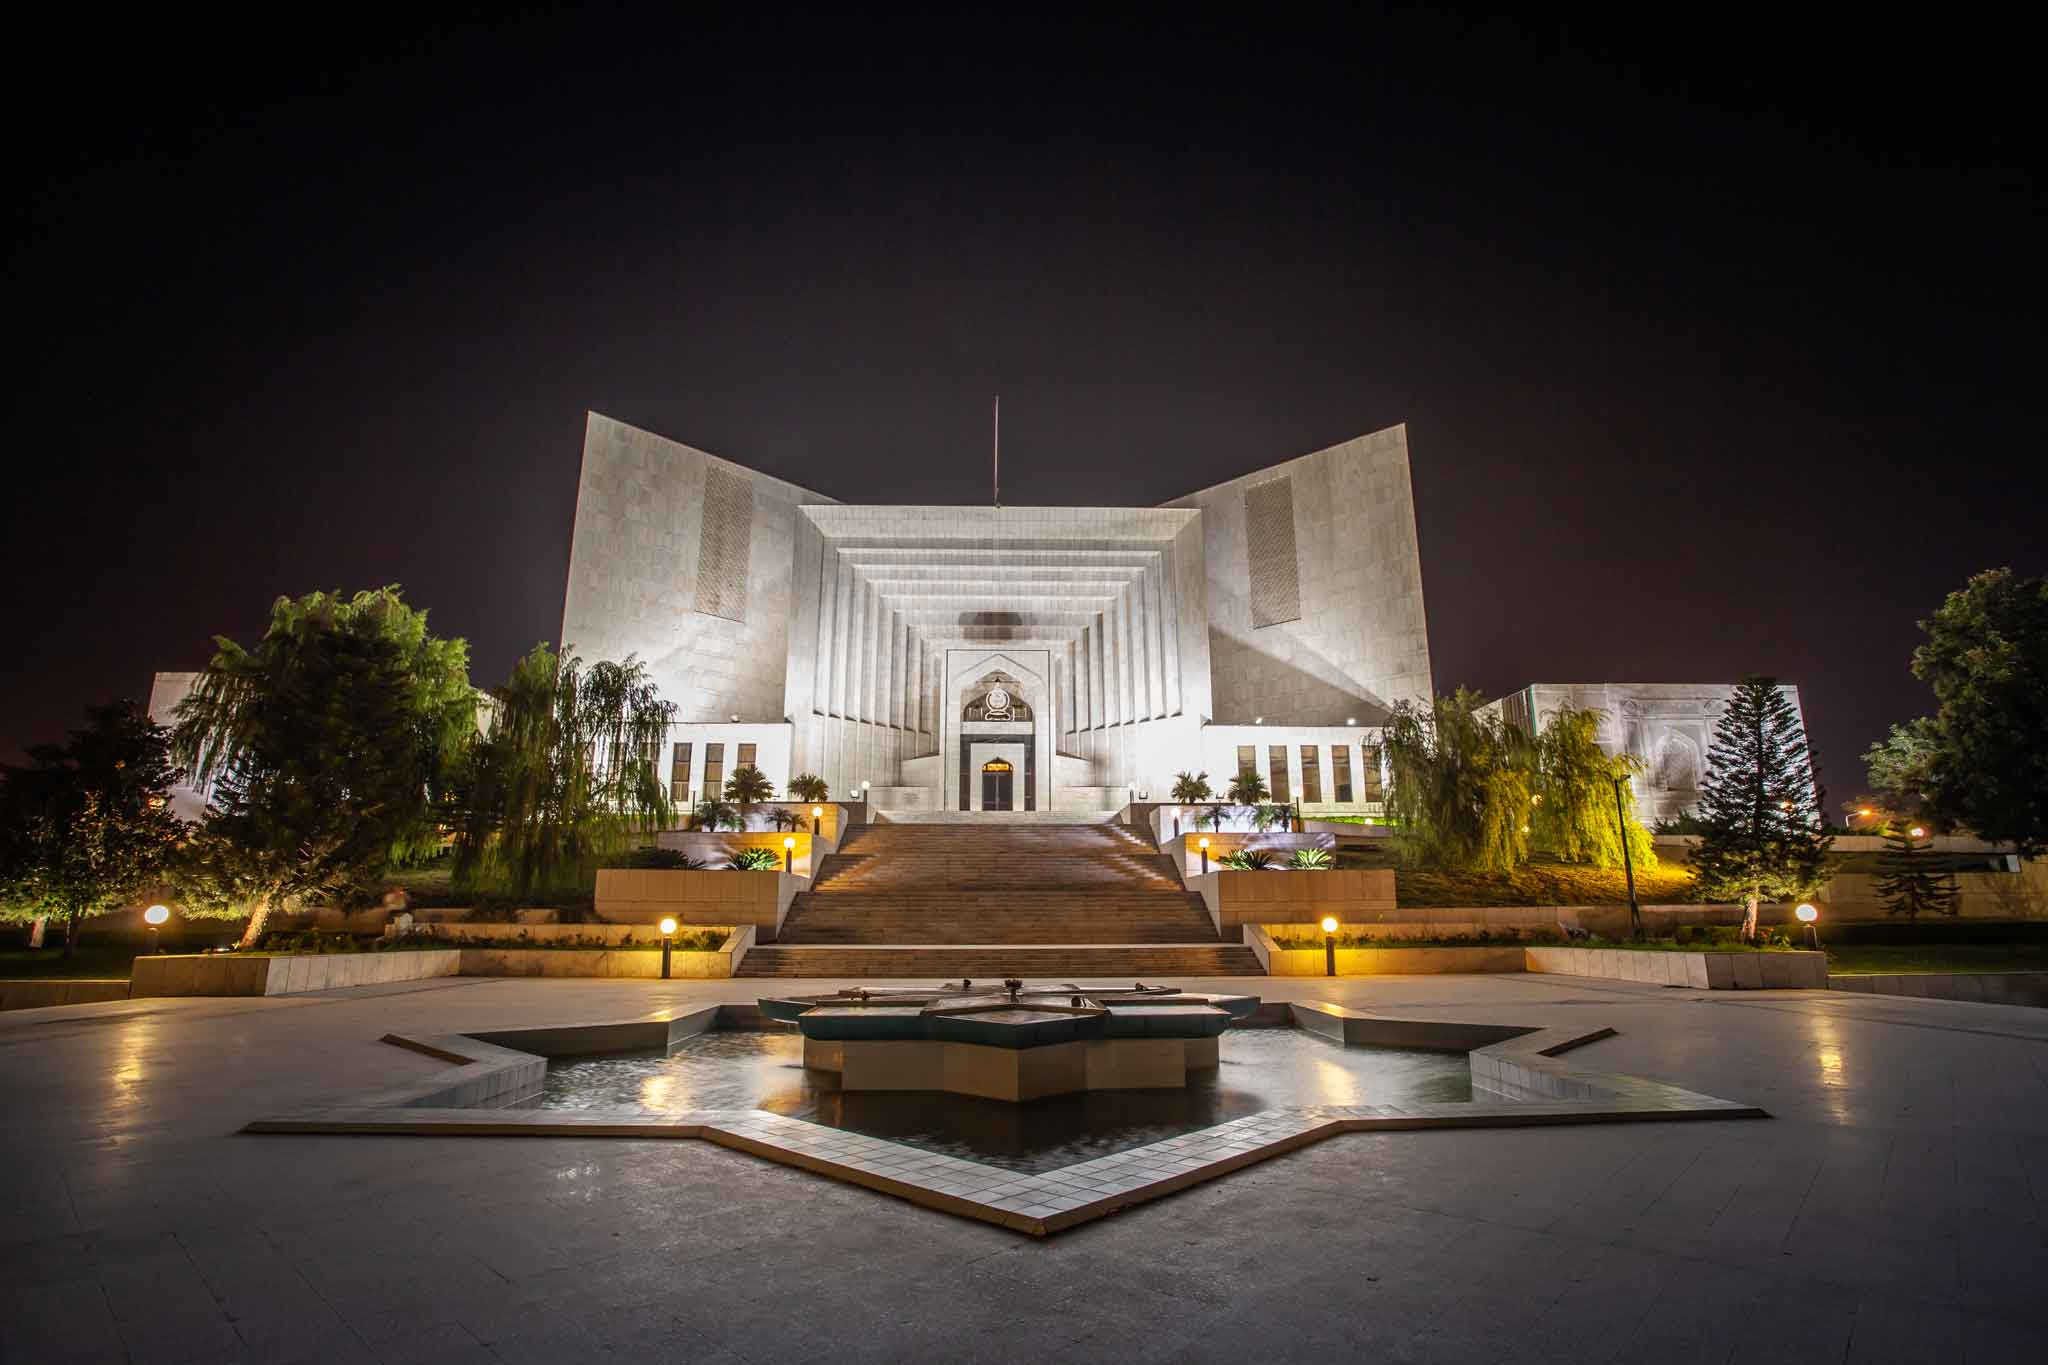 The Supreme Court (SC) has taken notice of the long detention of NAB accused and sought reasons from the accountability court for delay in the trial.